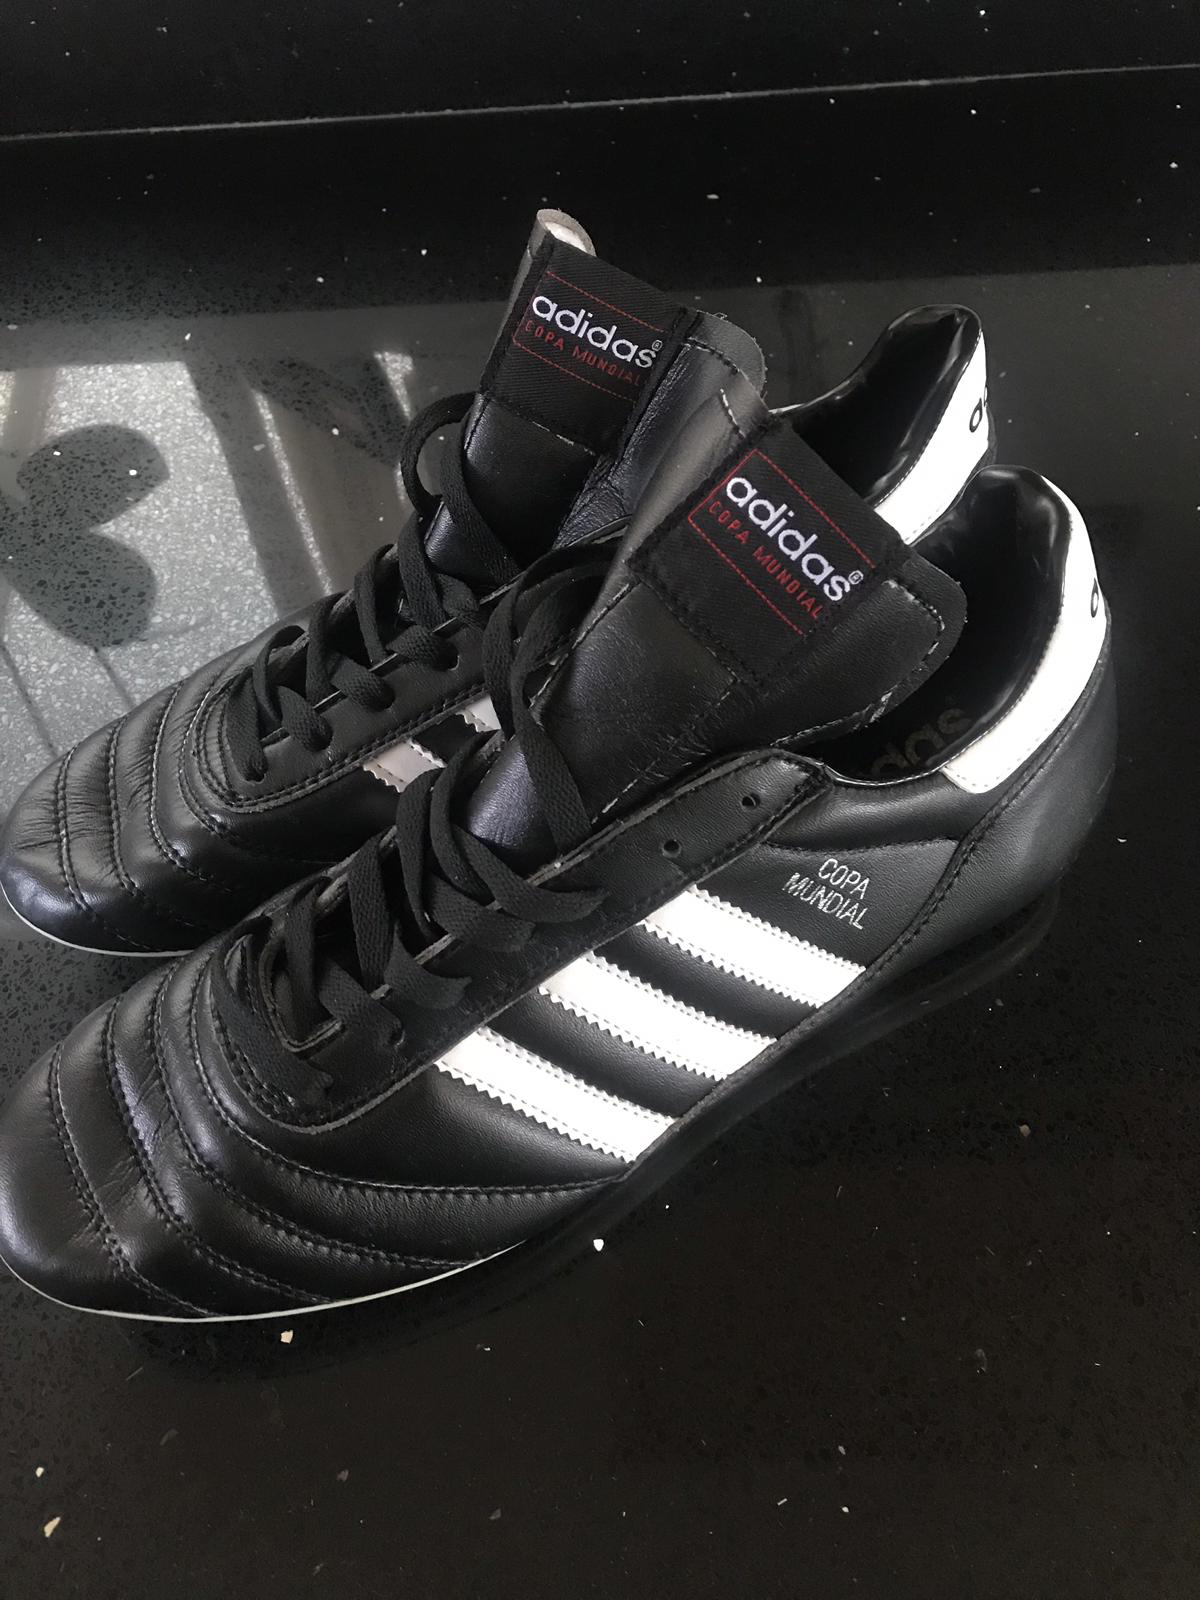 142b067998e ... get brandnew adidas copa mundial in size 9.5 in black white as tag  packaging from pet